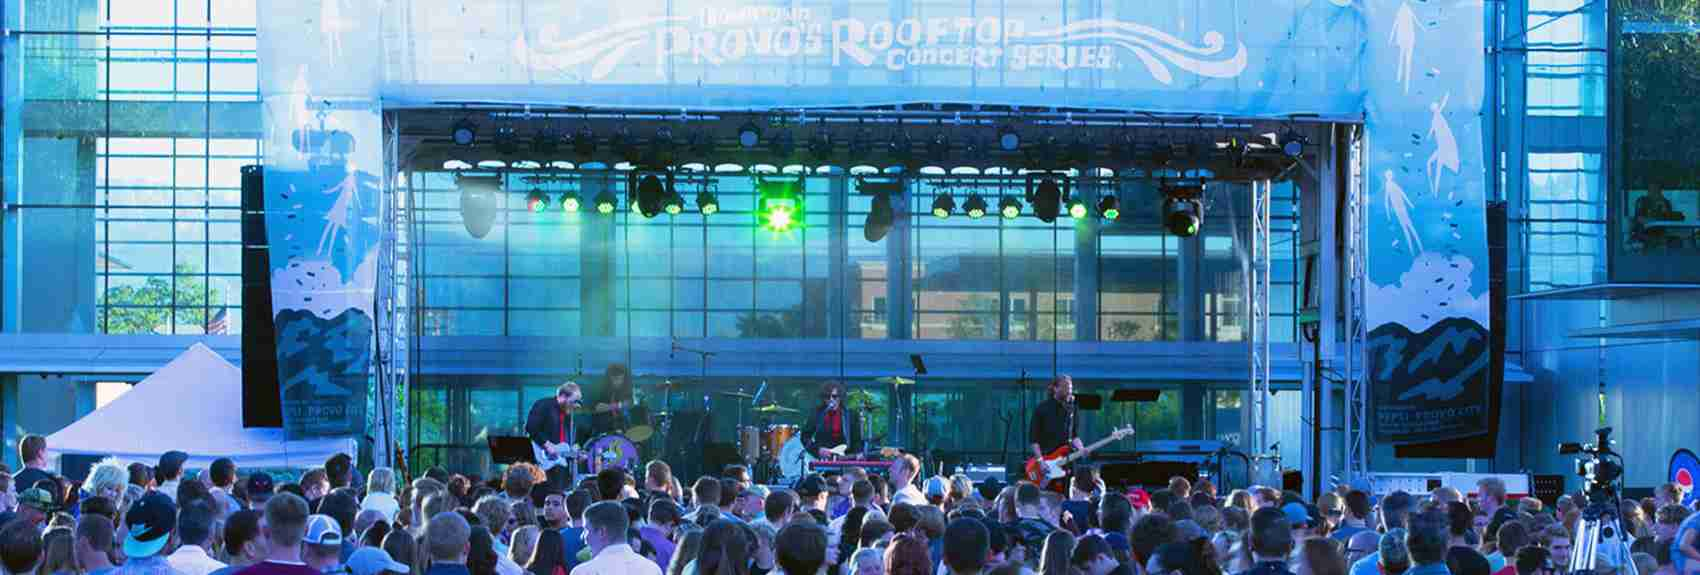 Roof Top Concert Series